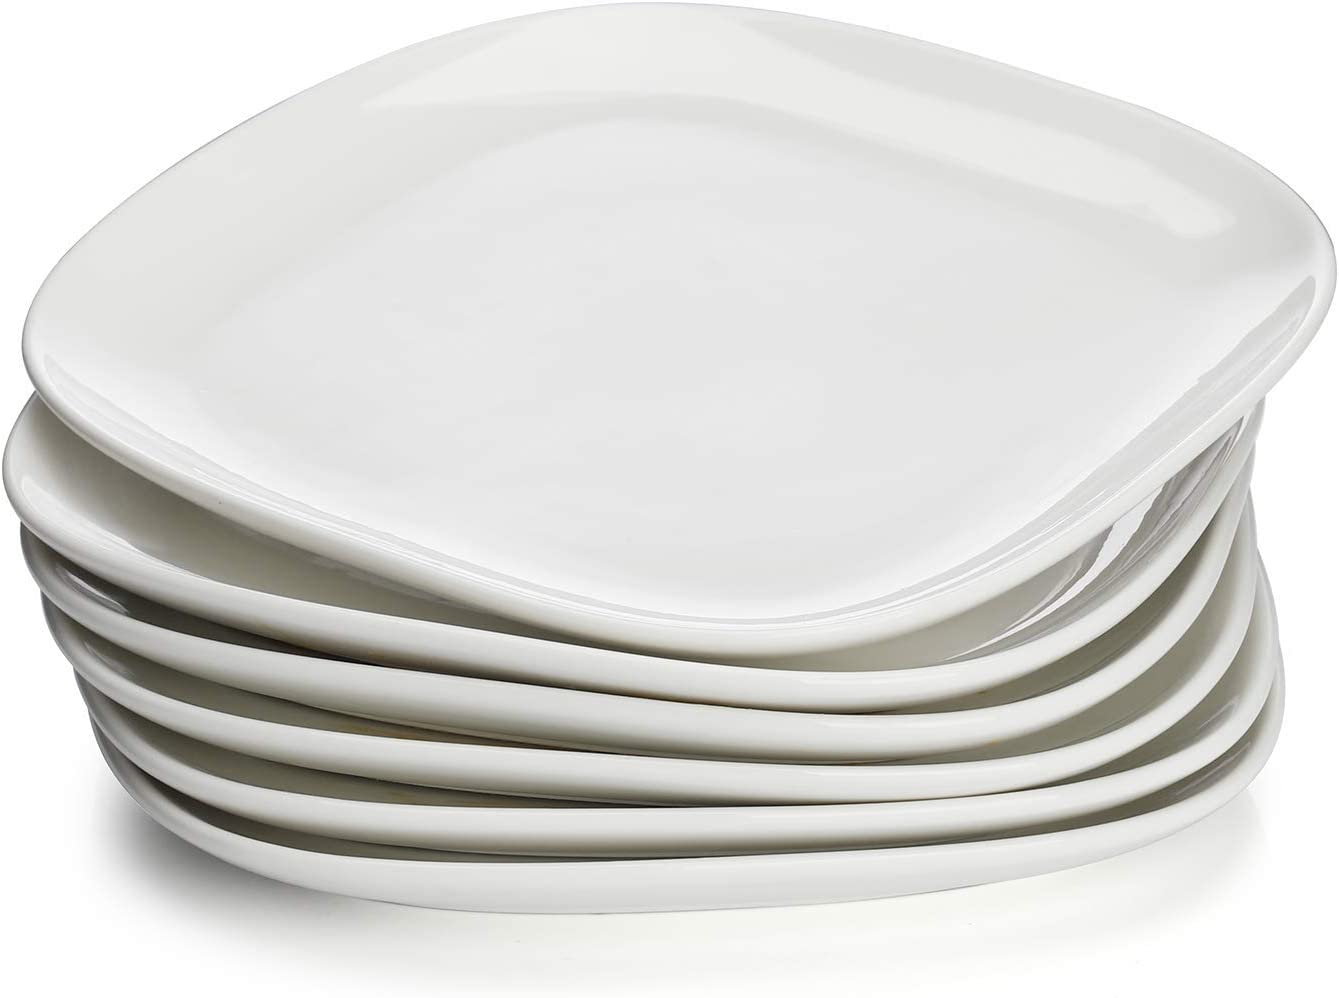 Sweese 152.001 Porcelain Square Dinner Plates - 10 Inch - Set of 6, White